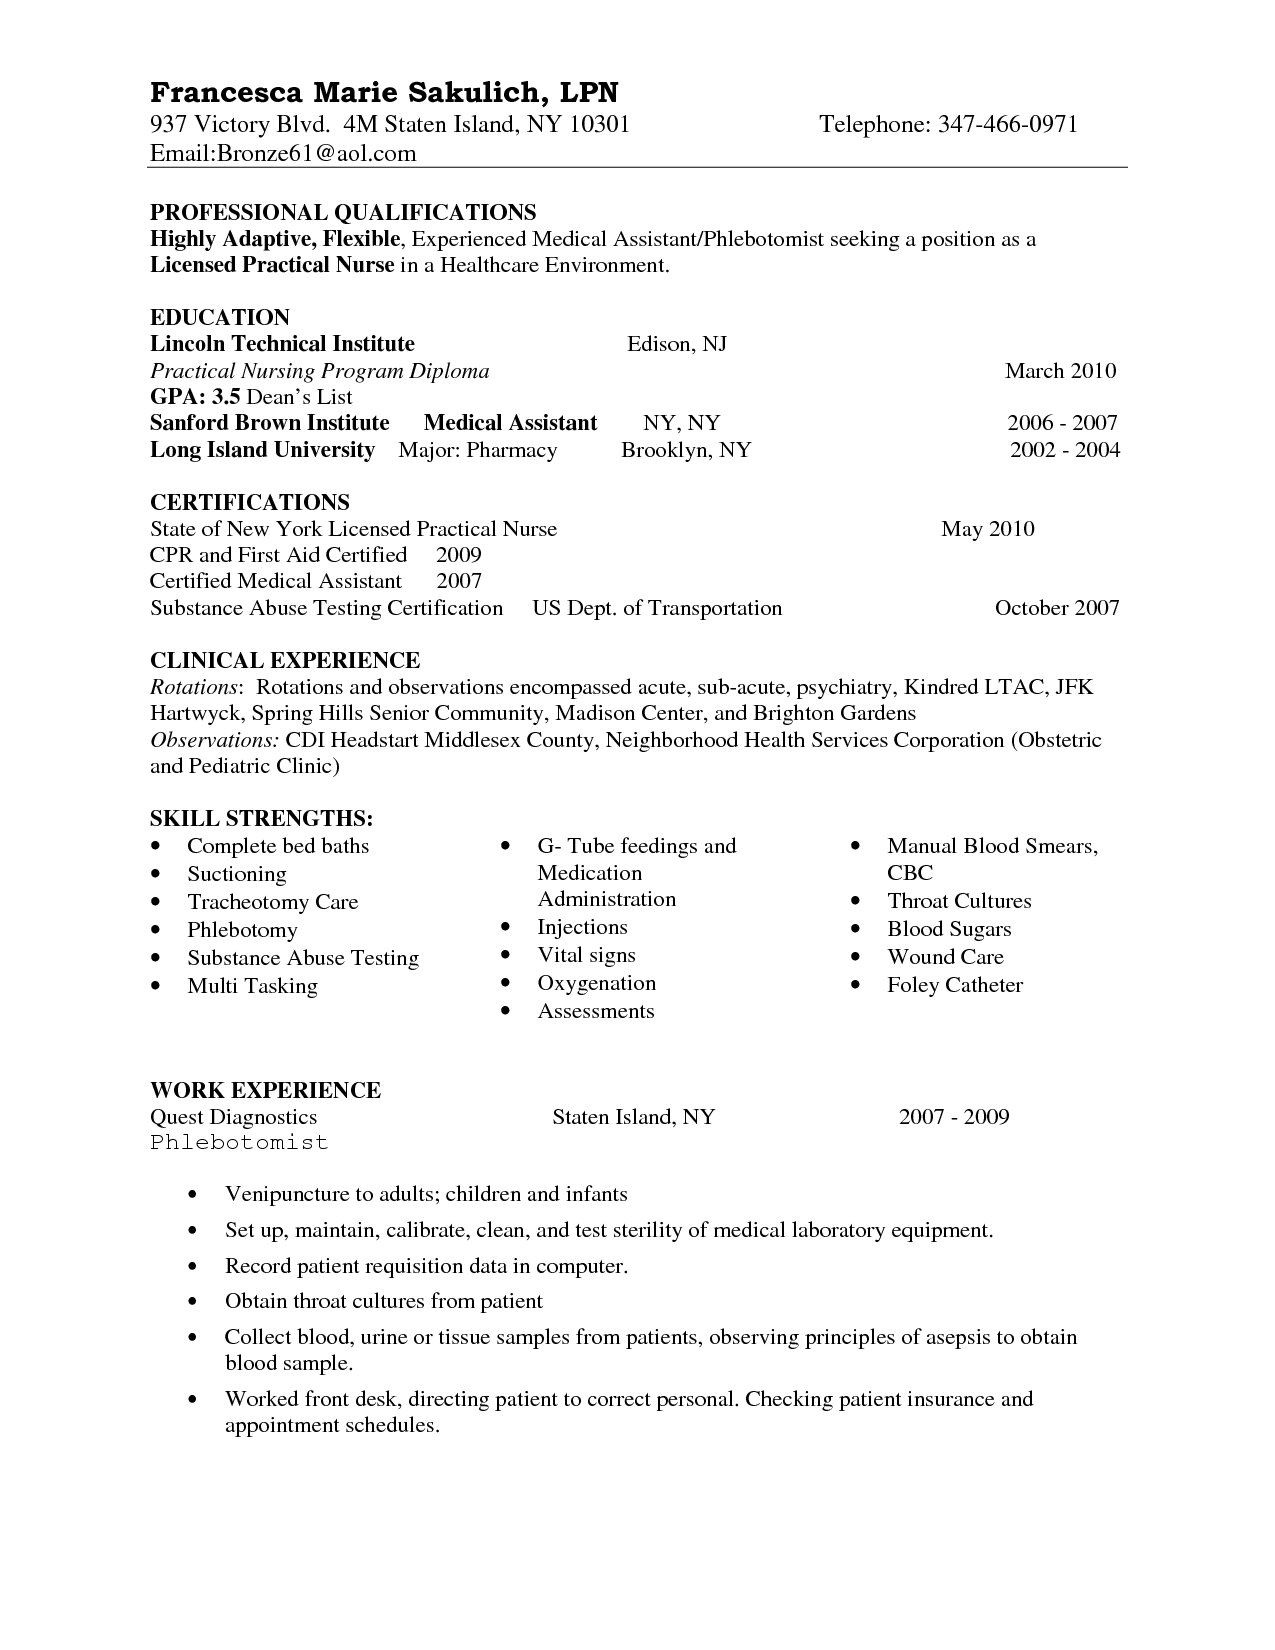 Resume Templates For Nursing Students Entry Level Lpn Resume Sample  Nursing  Pinterest  Nursing